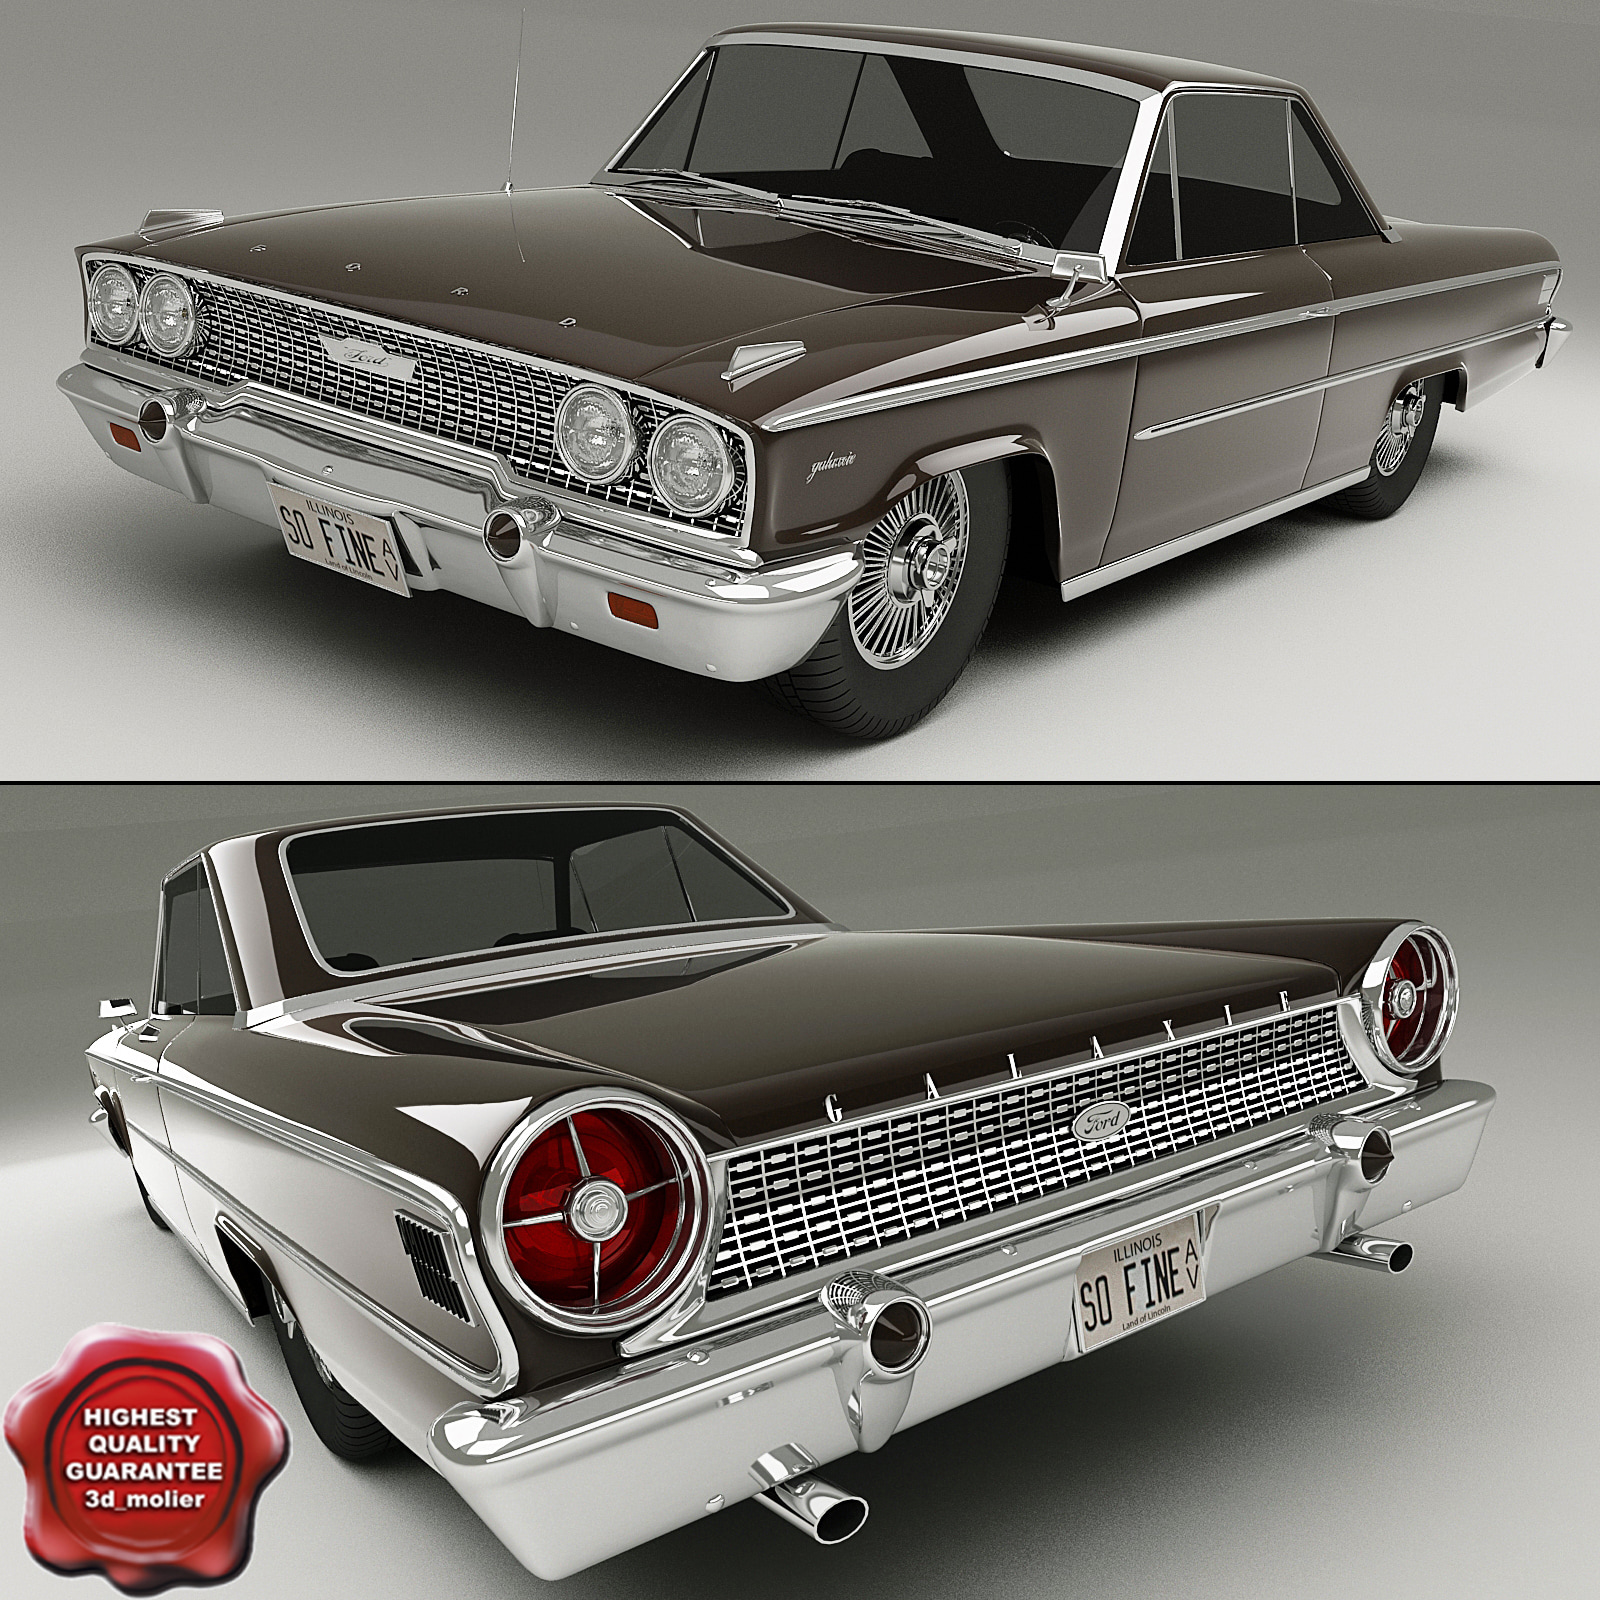 Ford_Galaxie_1963_00.jpg